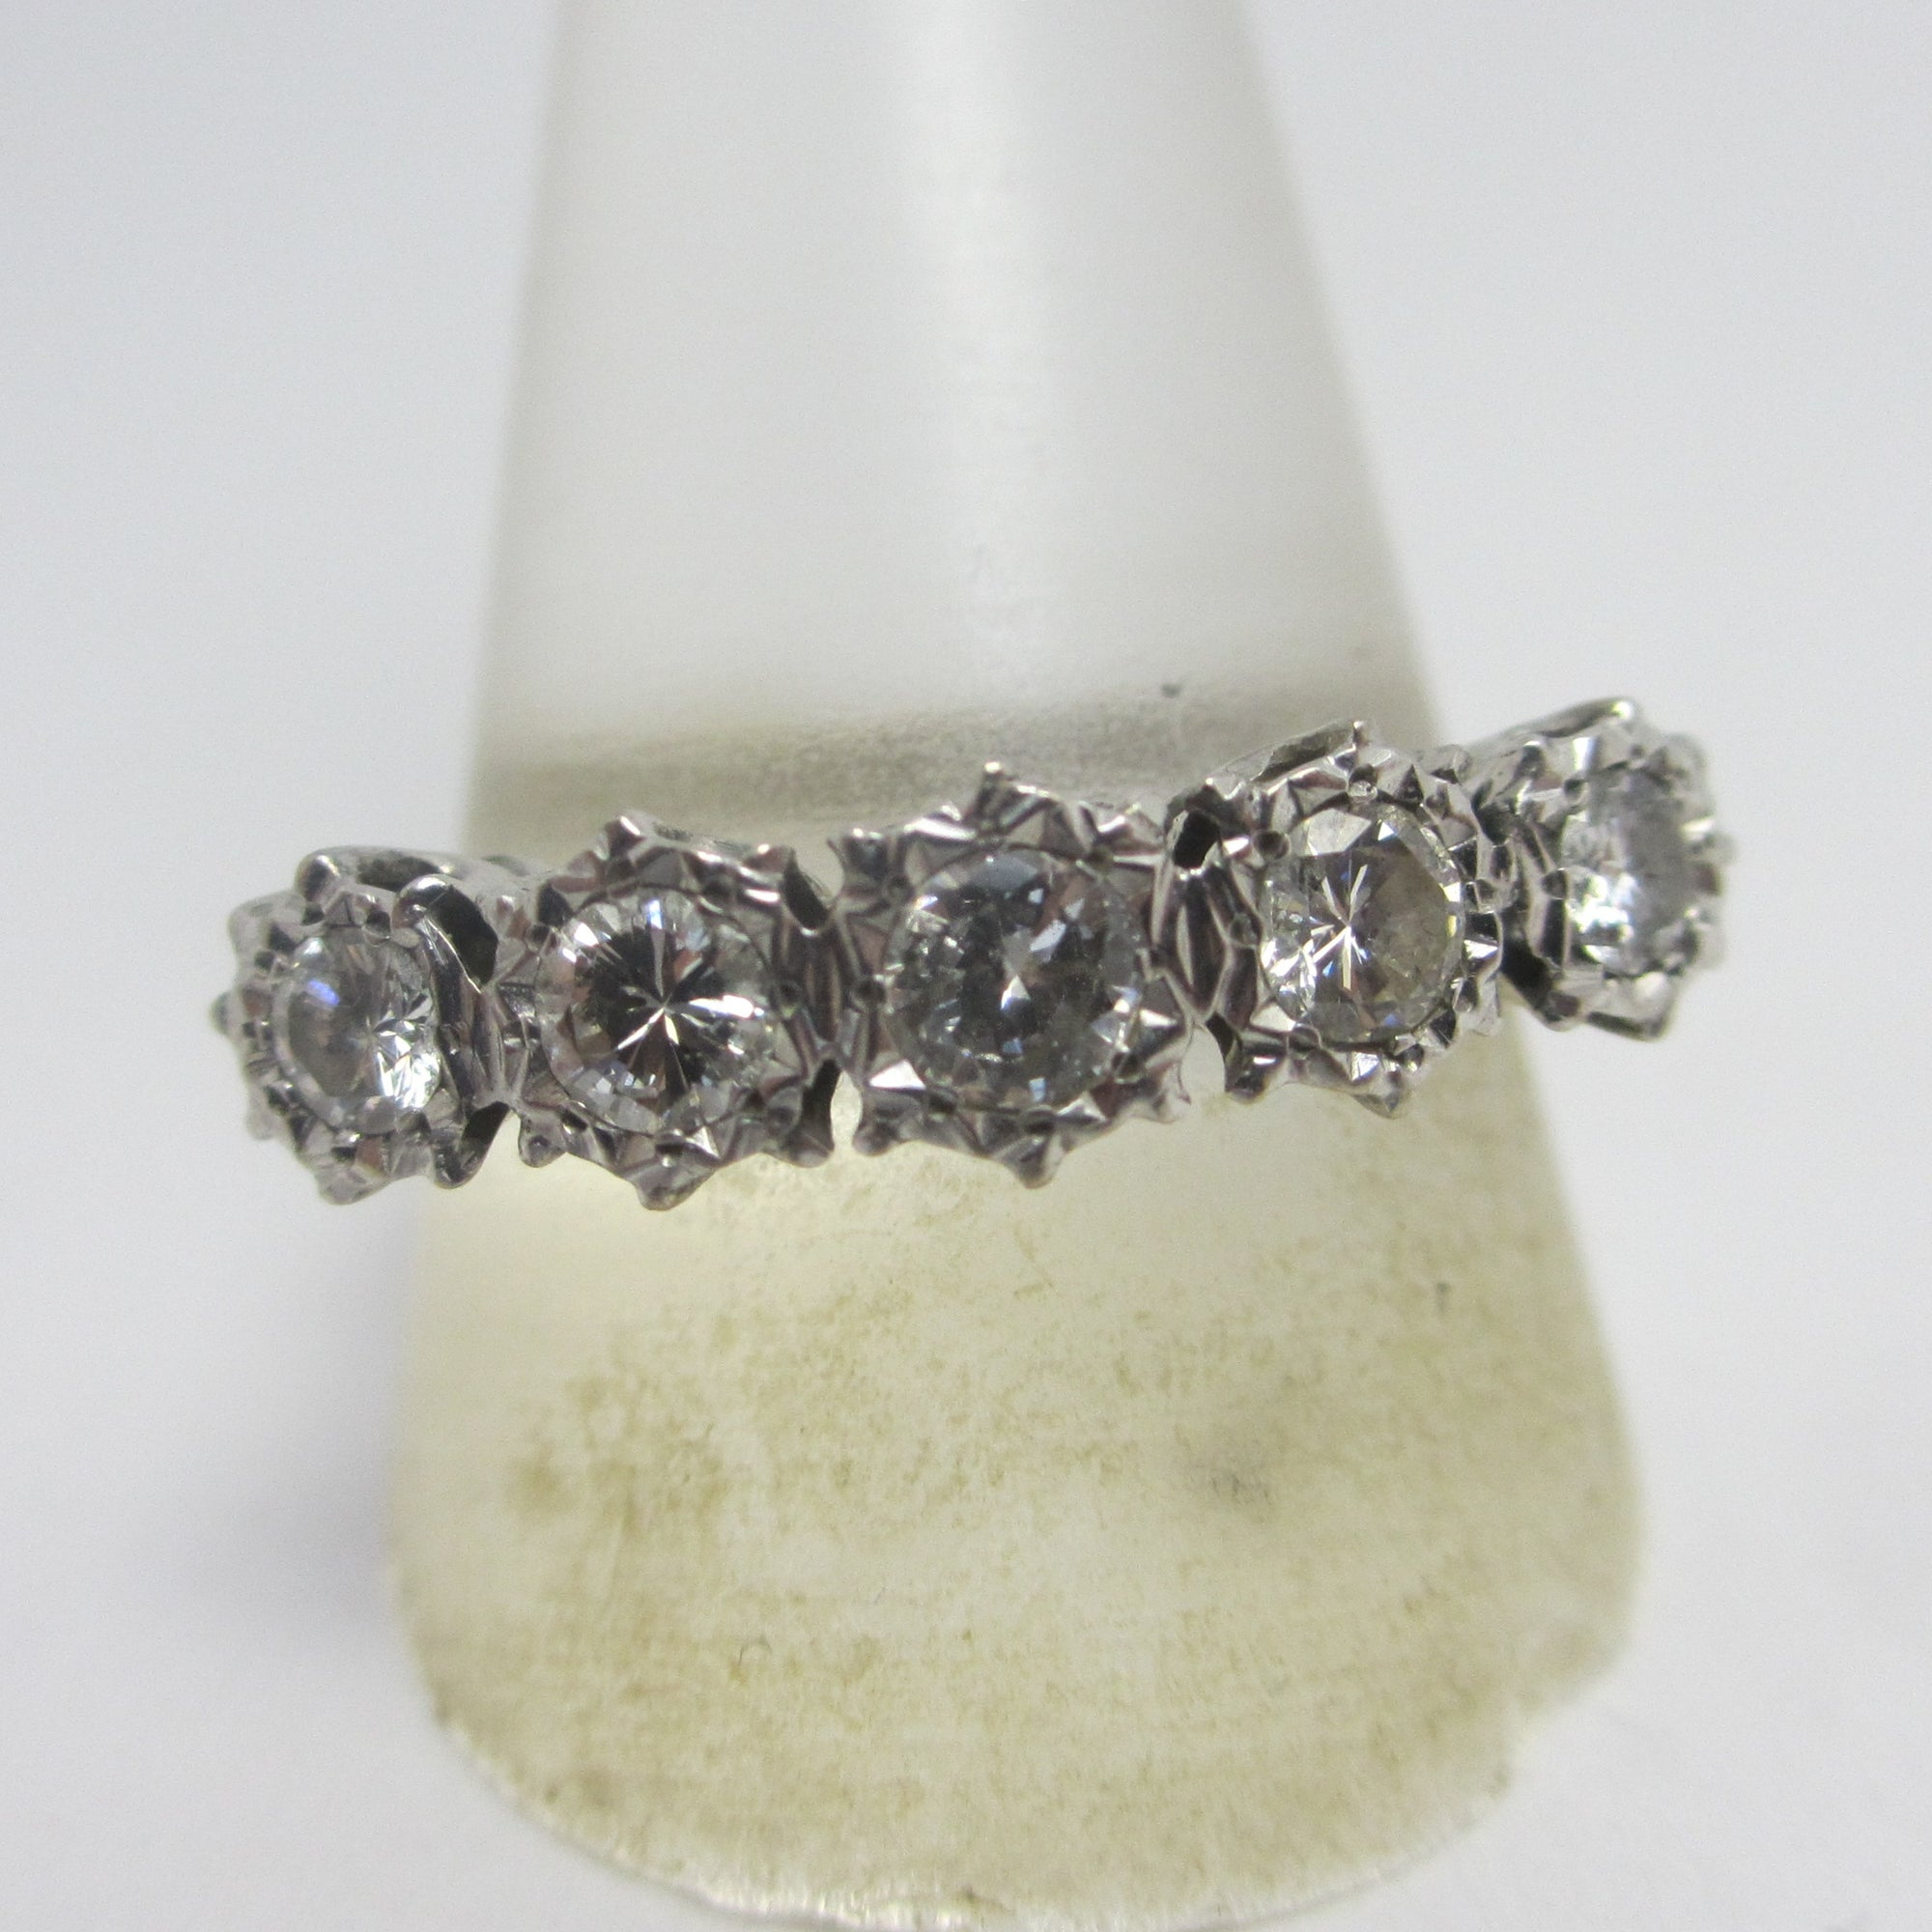 1.8ct Diamond 18k White Gold Ring Antique Edwardian c1910